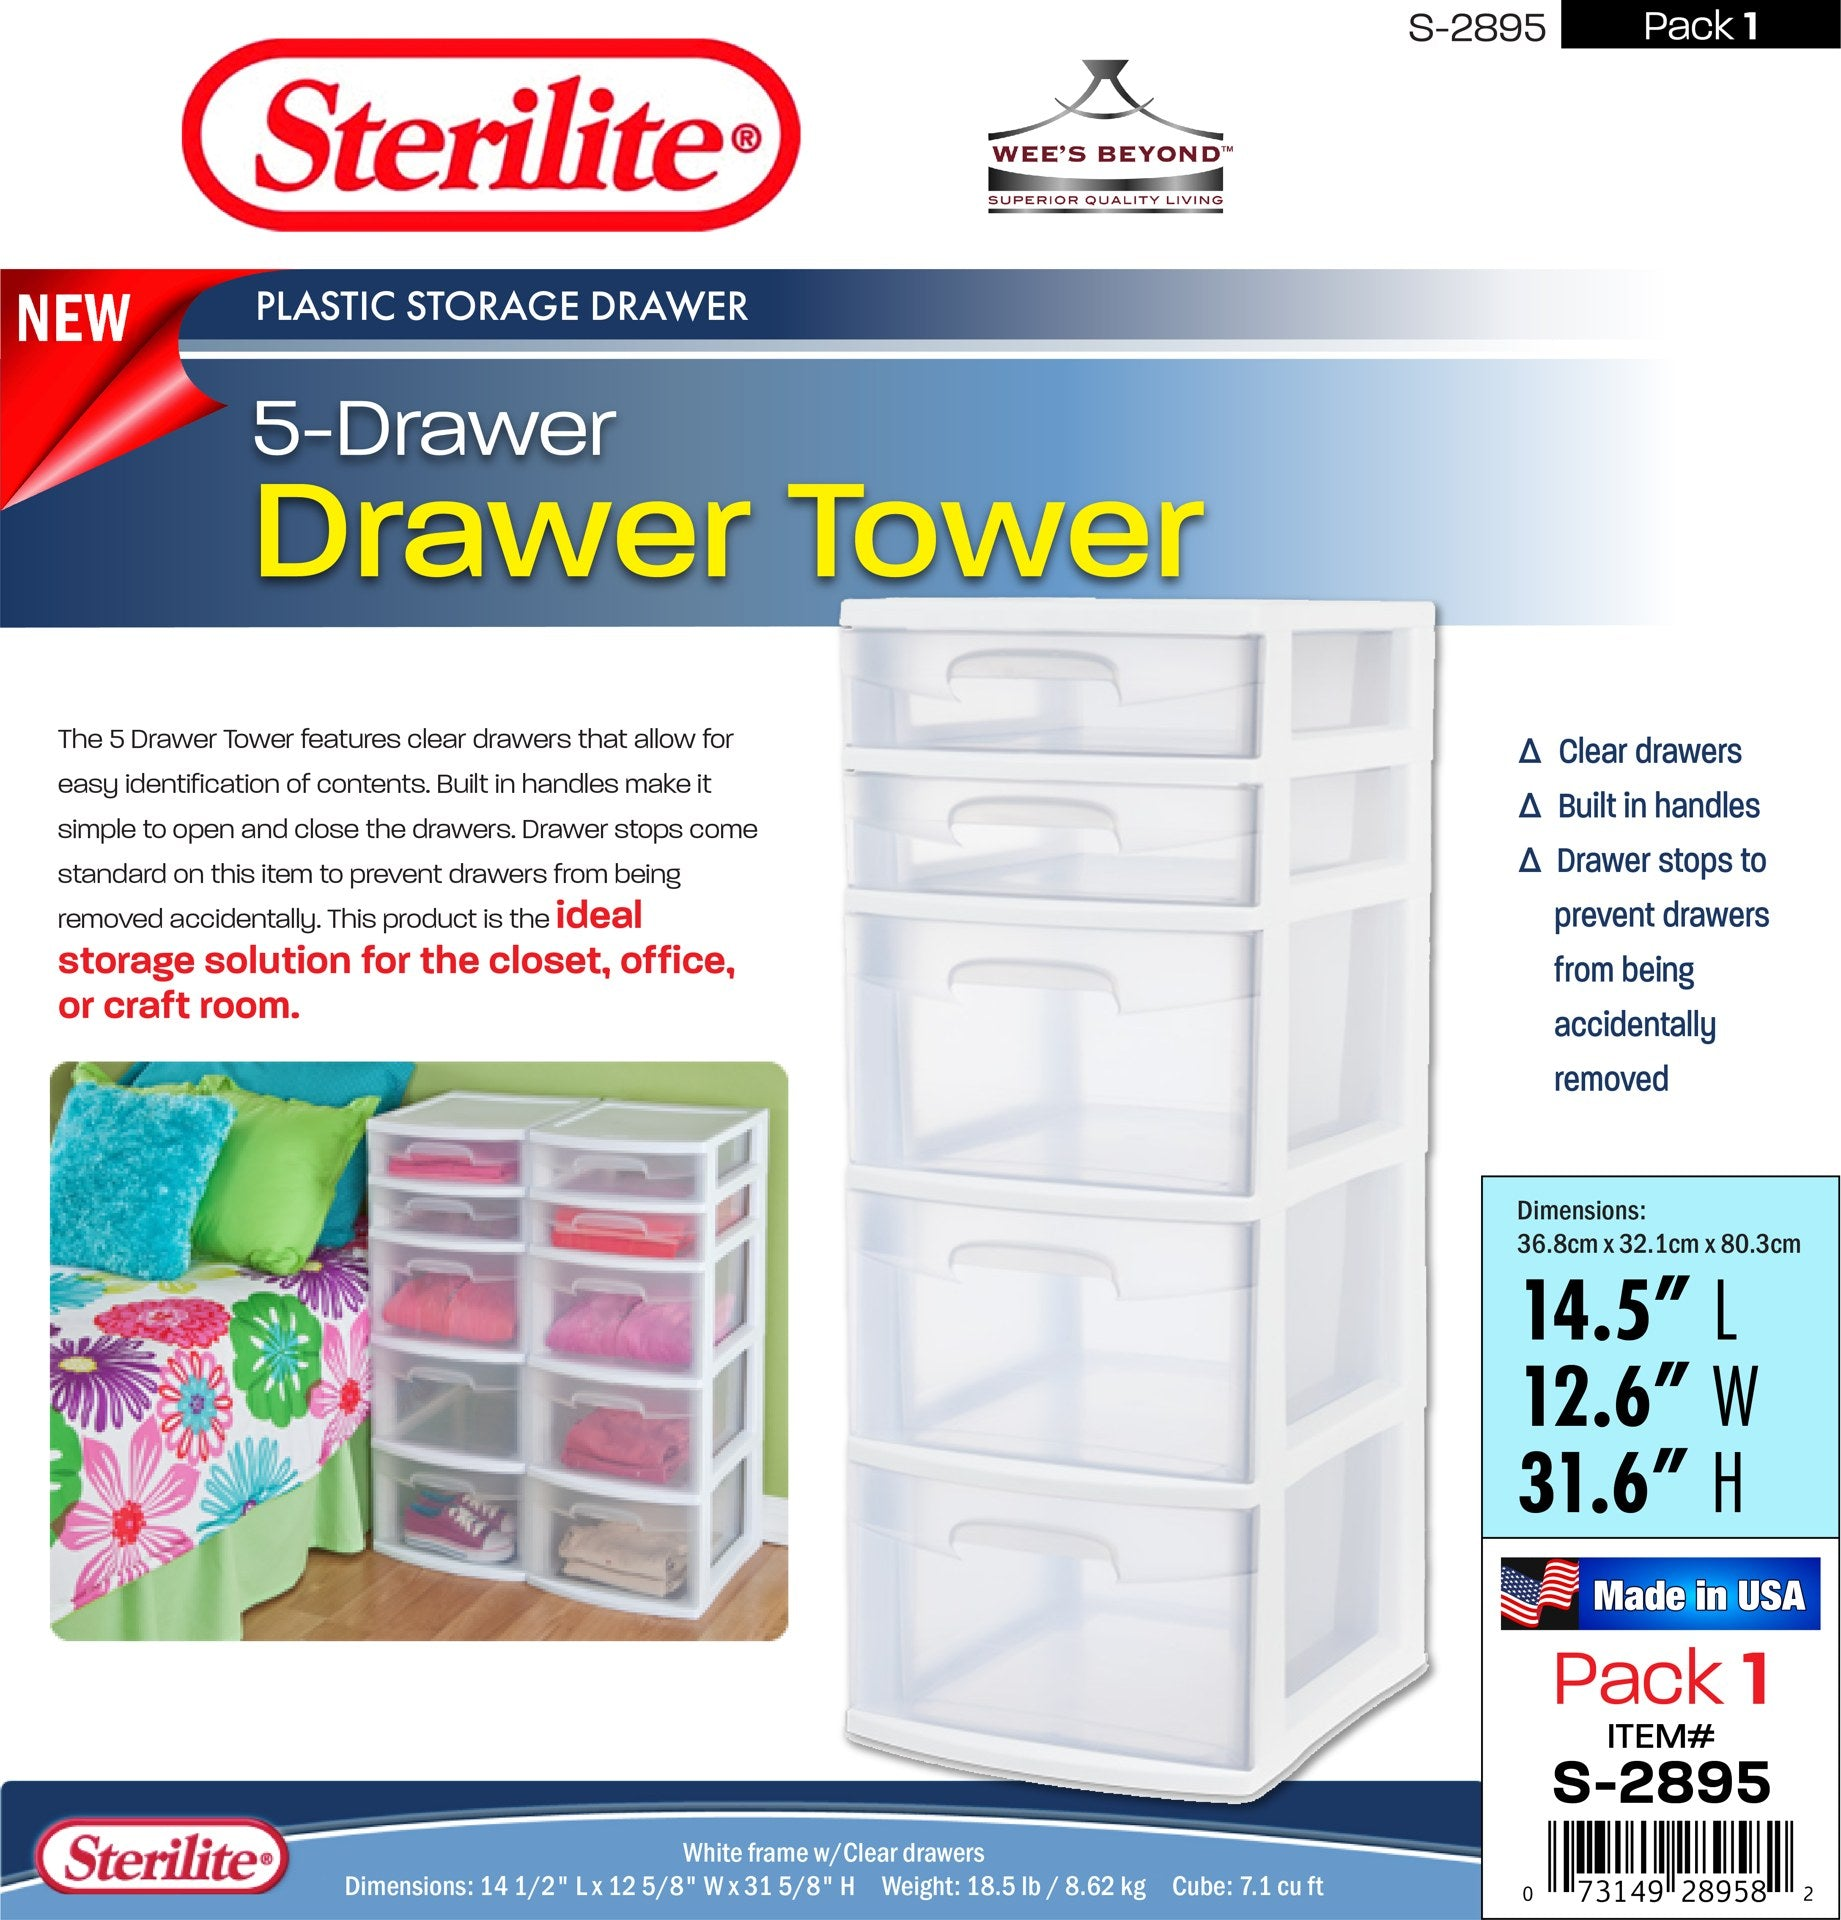 #S-2895 Sterilite Plastic 5 Drawer Tower